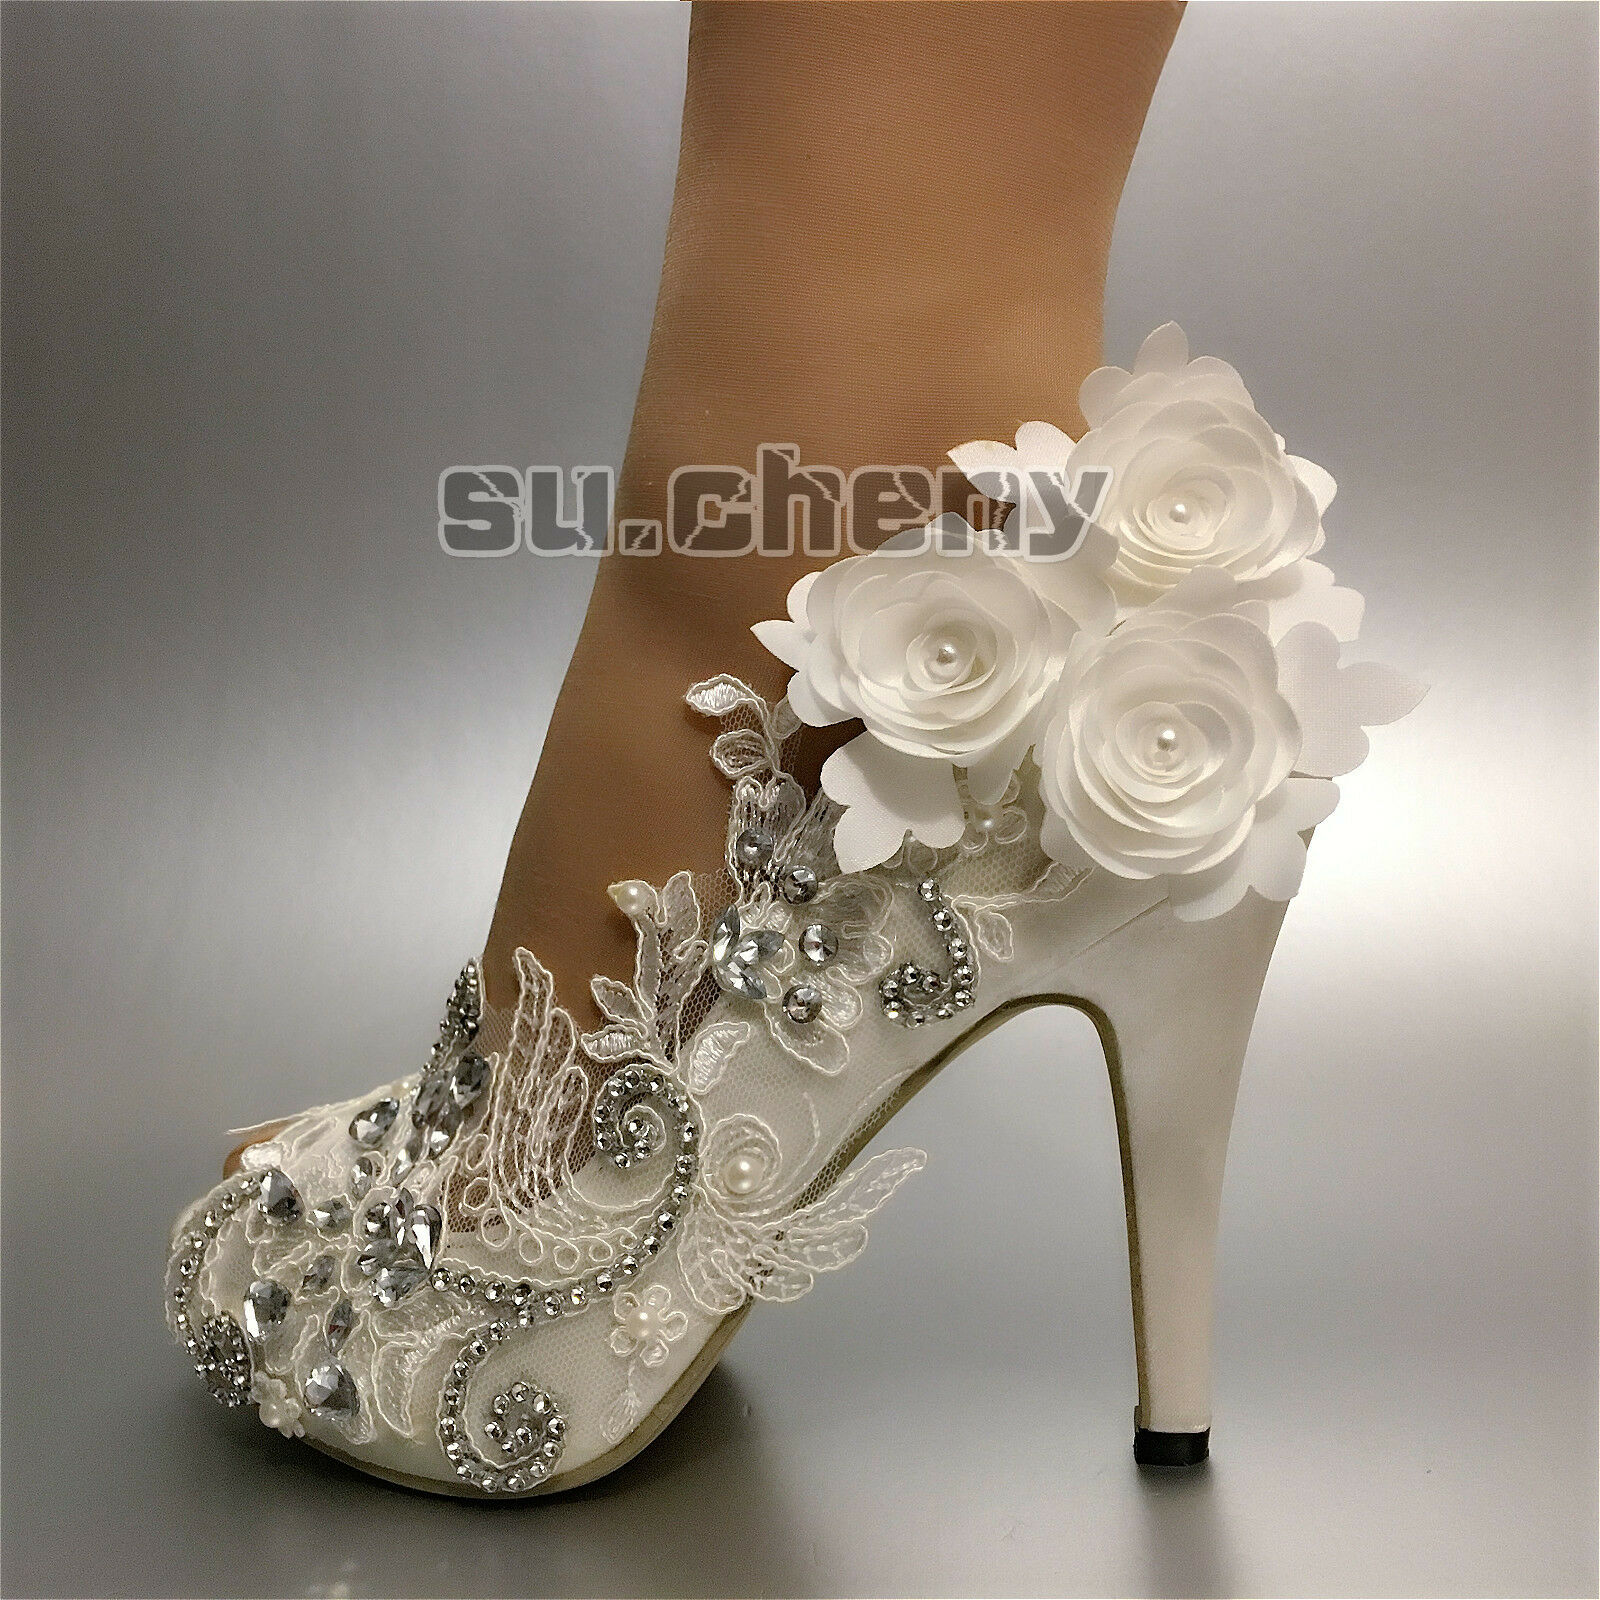 3 4 Heel Satin White Ivory Lace Flowers Open Toe Wedding Shoes Bride Size